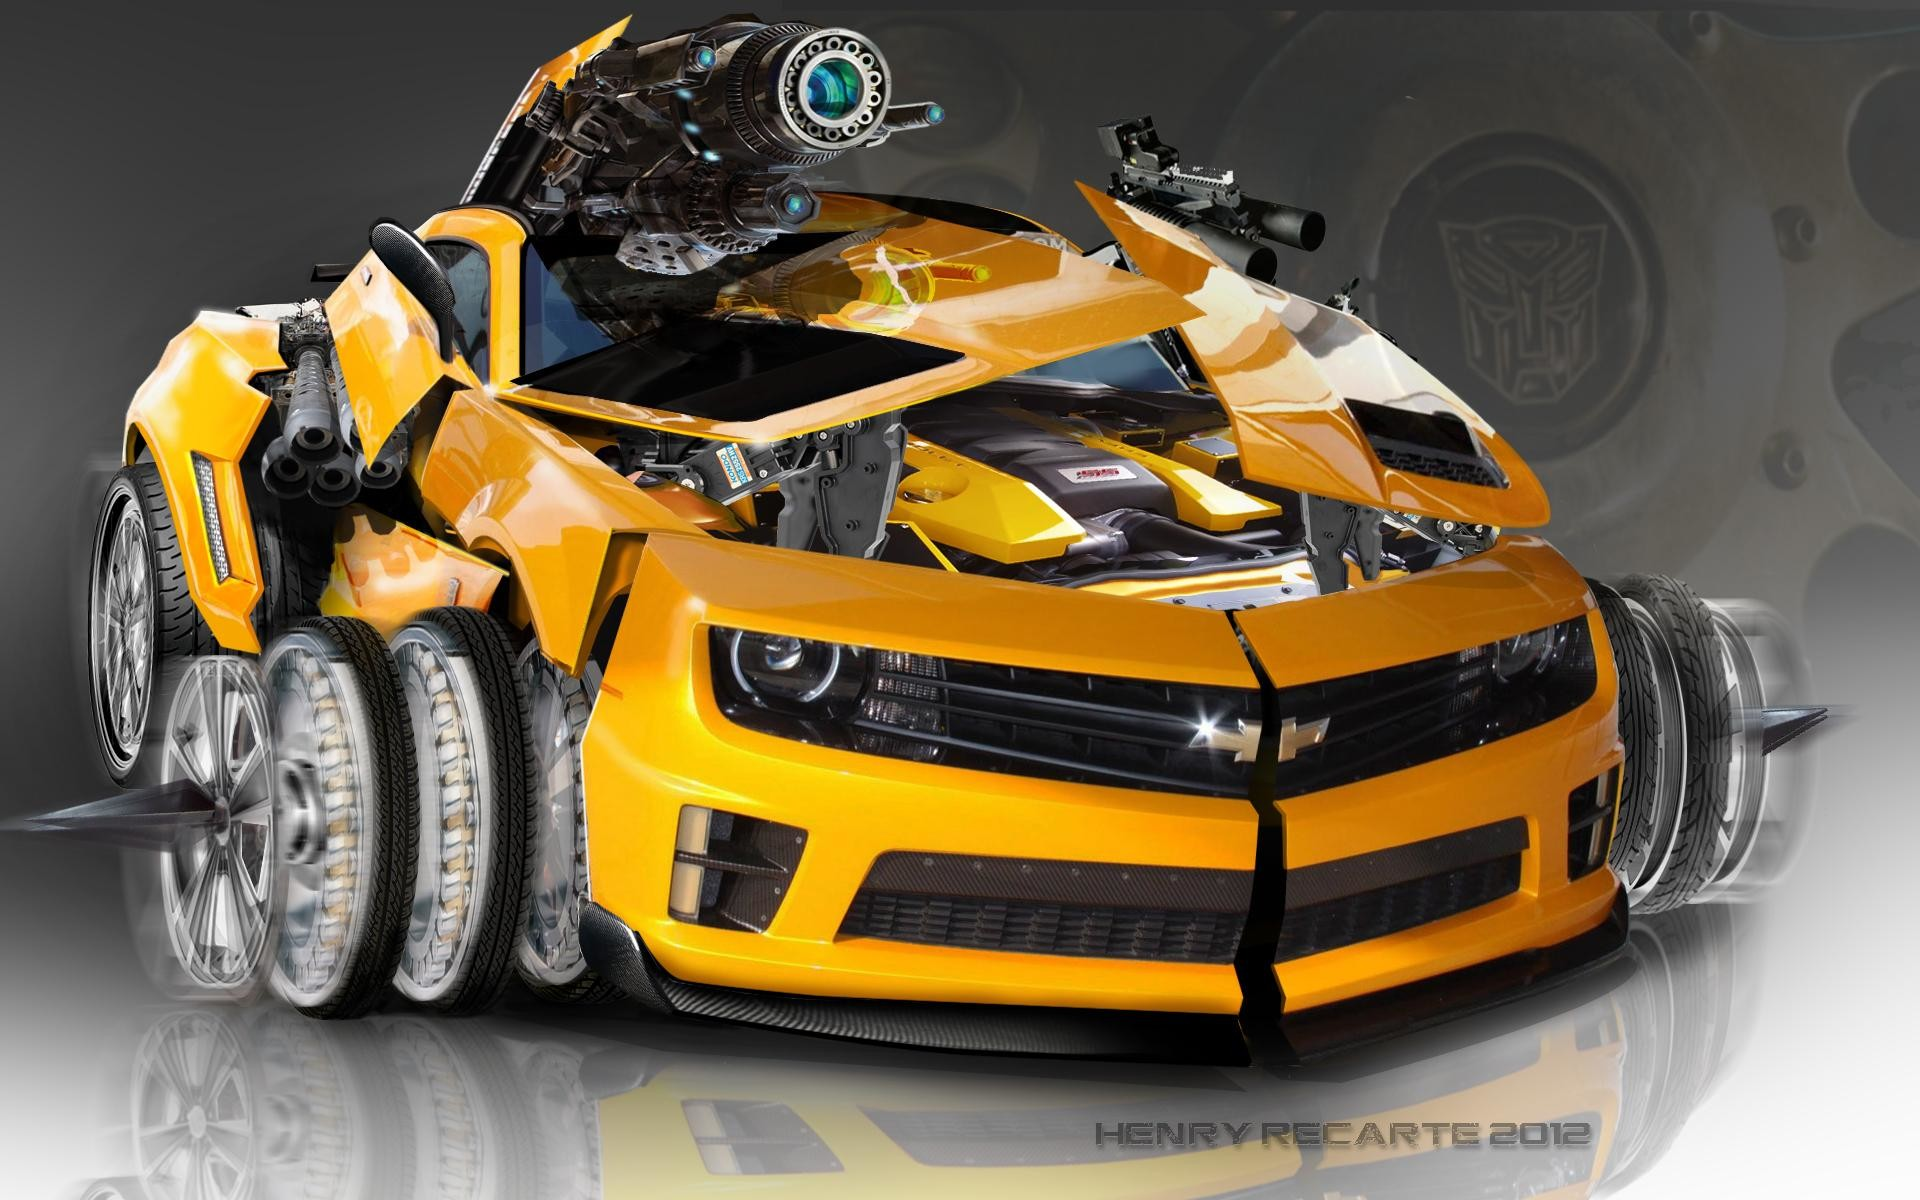 1920x1200 Transformers Bumblebee wallpaper Bumblebee Transformers Lockscreen iPhone  Plus HD Wallpaper